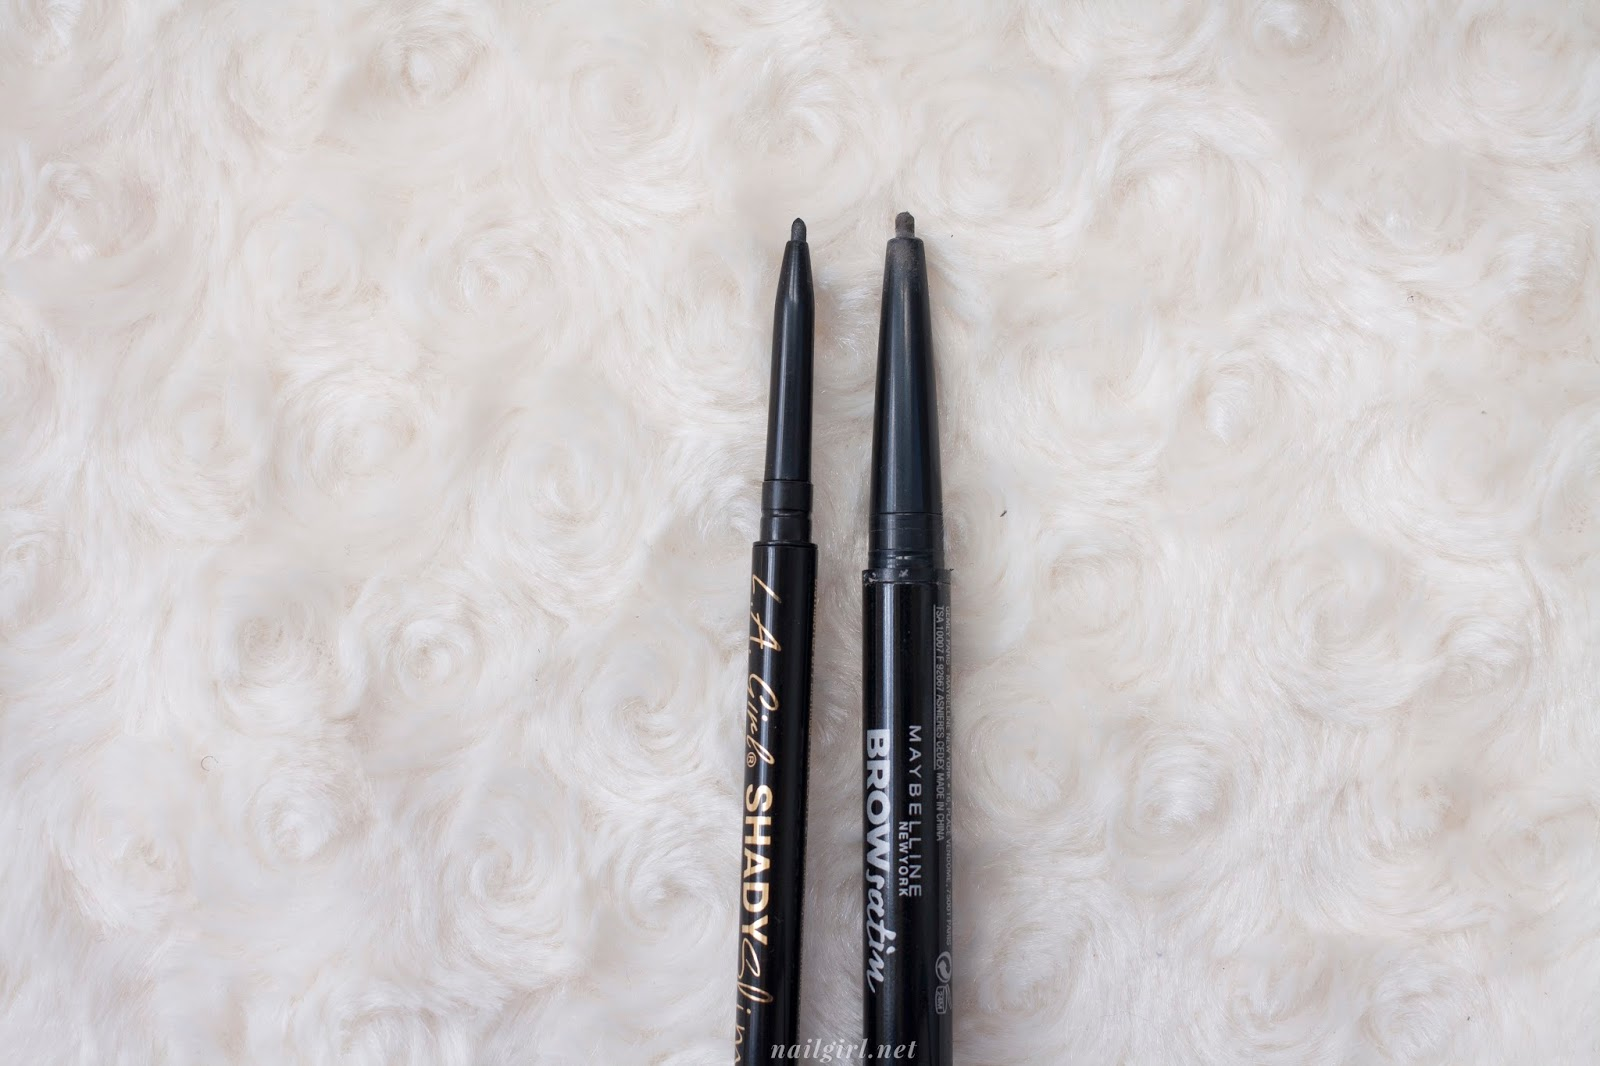 l.a. girl shady slim brow pencil comparison review